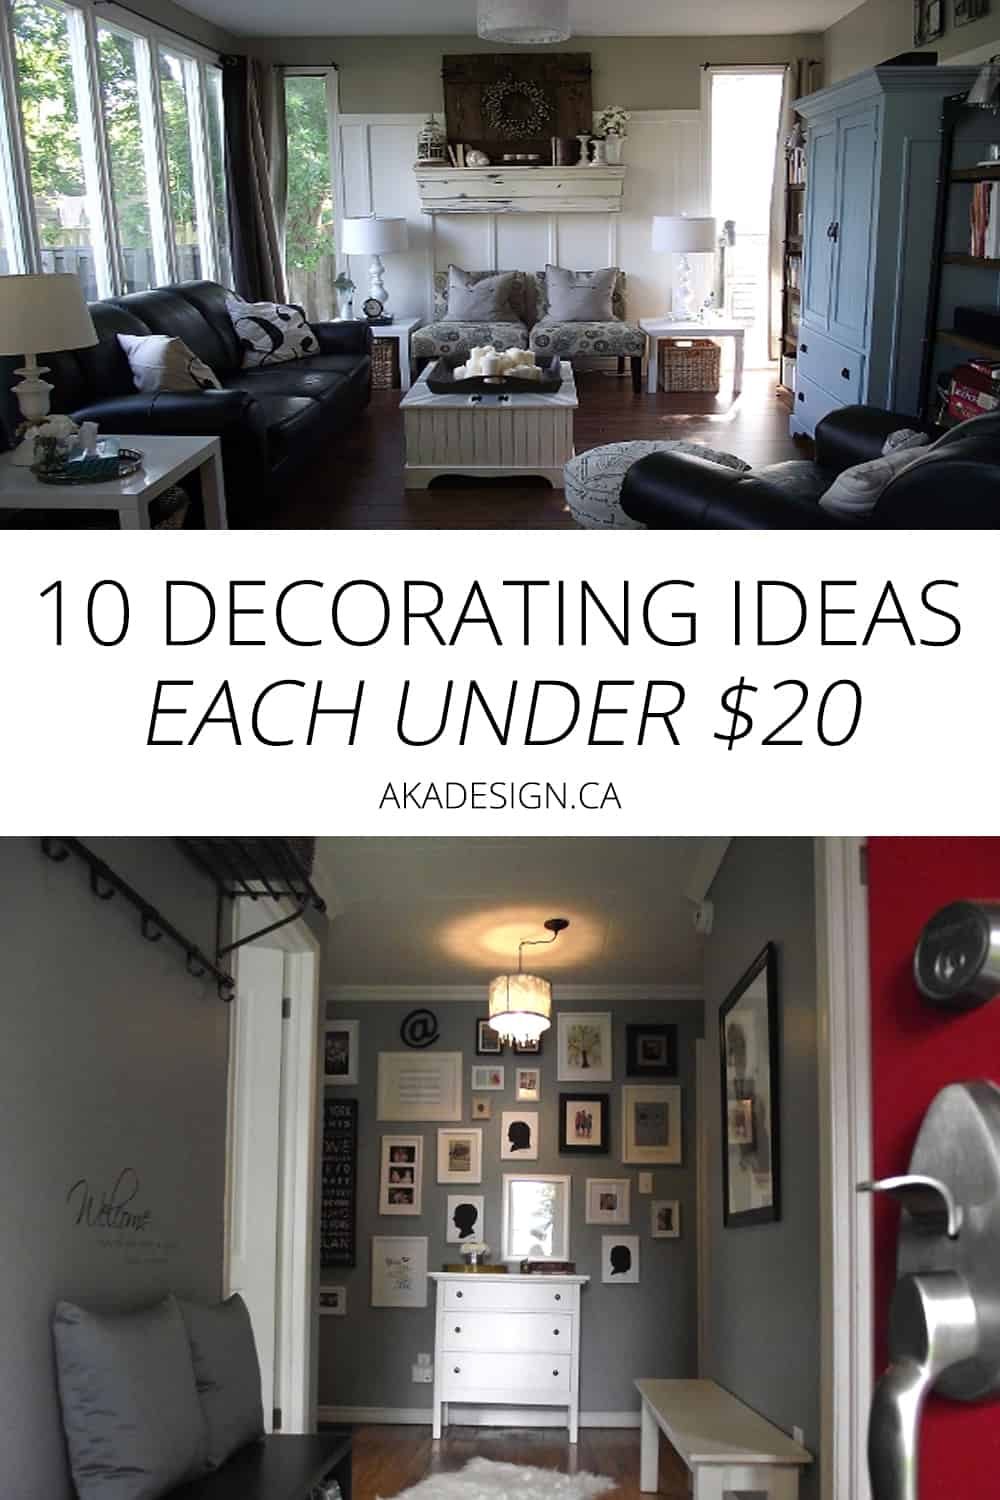 Oh my! Super easy ideas for decorating on the cheap!